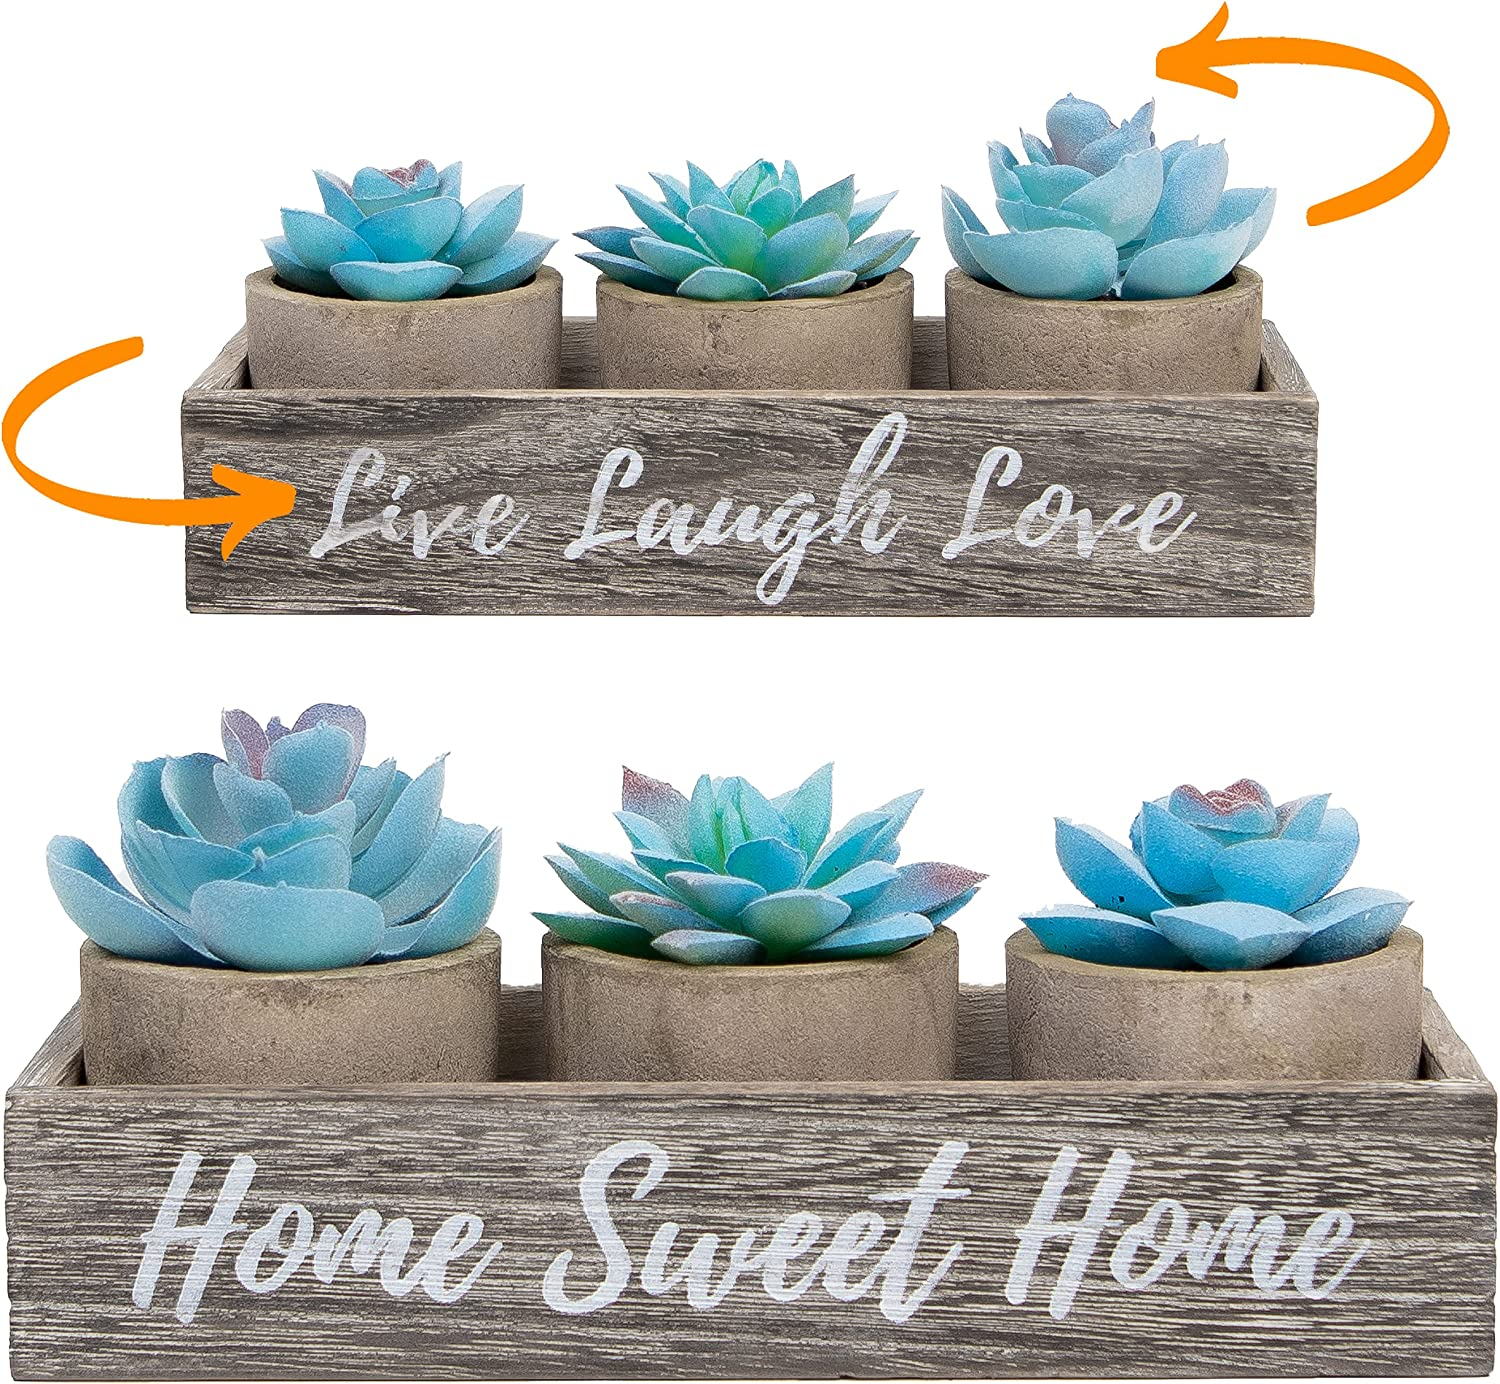 3 Artificial Succulent Plants with Pots with Rustic Planter Box – Home Sweet Home & Live Laugh Love Realistic Greenery Mini Faux Plant for Home Decor Office Table Bathroom Kitchen Dorm - Blue